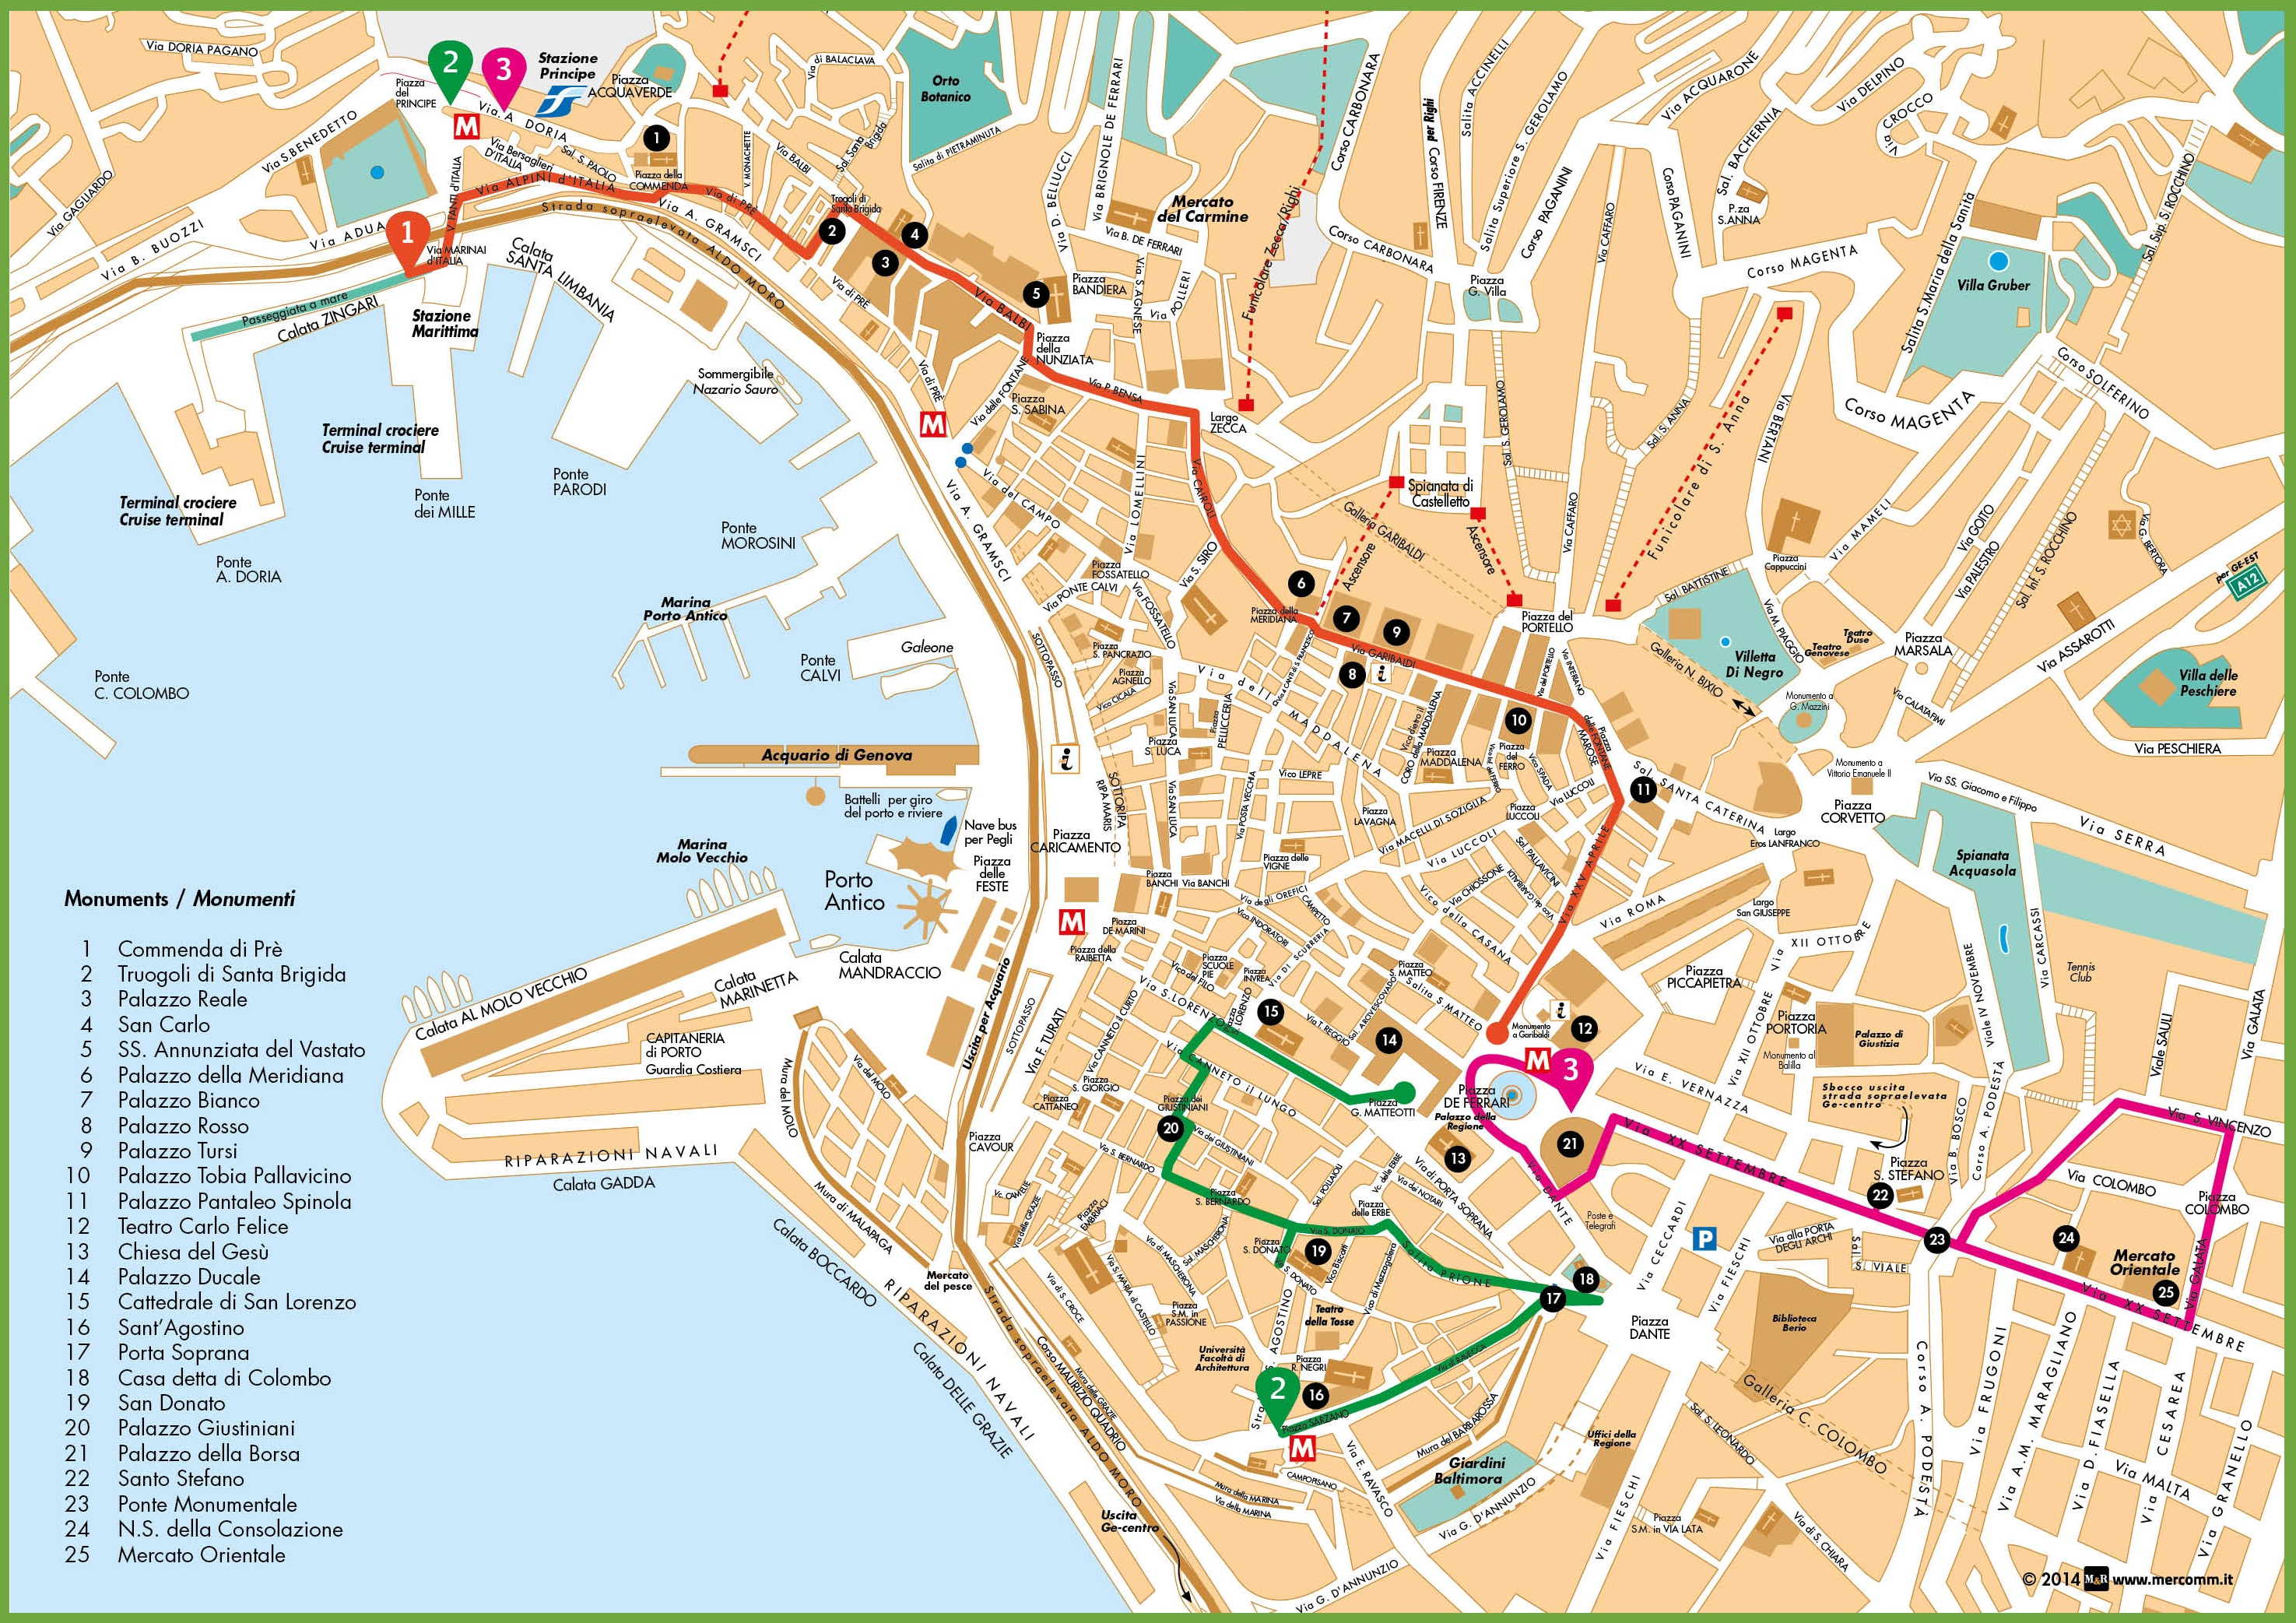 los angeles tourist map with Genoa Sightseeing Map on Sri Lanka also Freiburg Tourist Attractions Map also Verona Tourist Attractions Map besides Trento Tourist Map together with Melbourne Zoo Map.